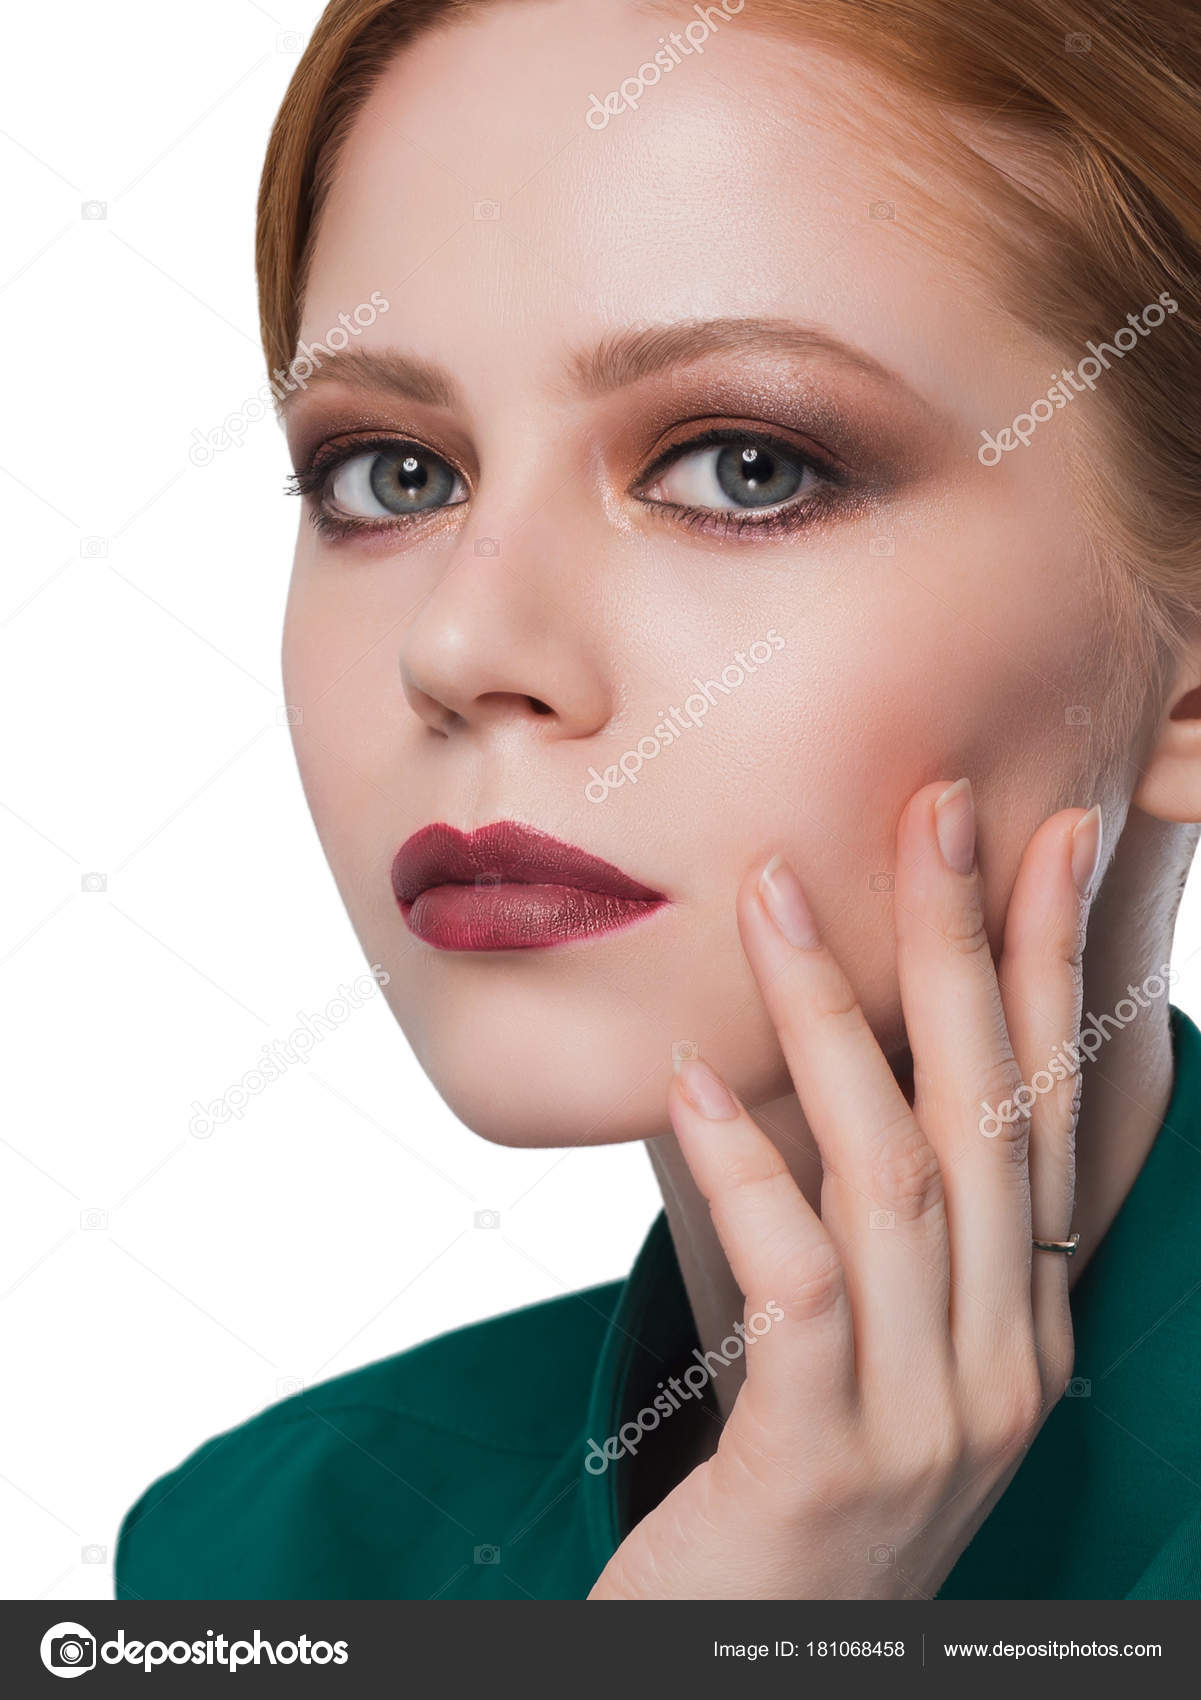 Redhead girl with beautiful makeup hand on my face looking